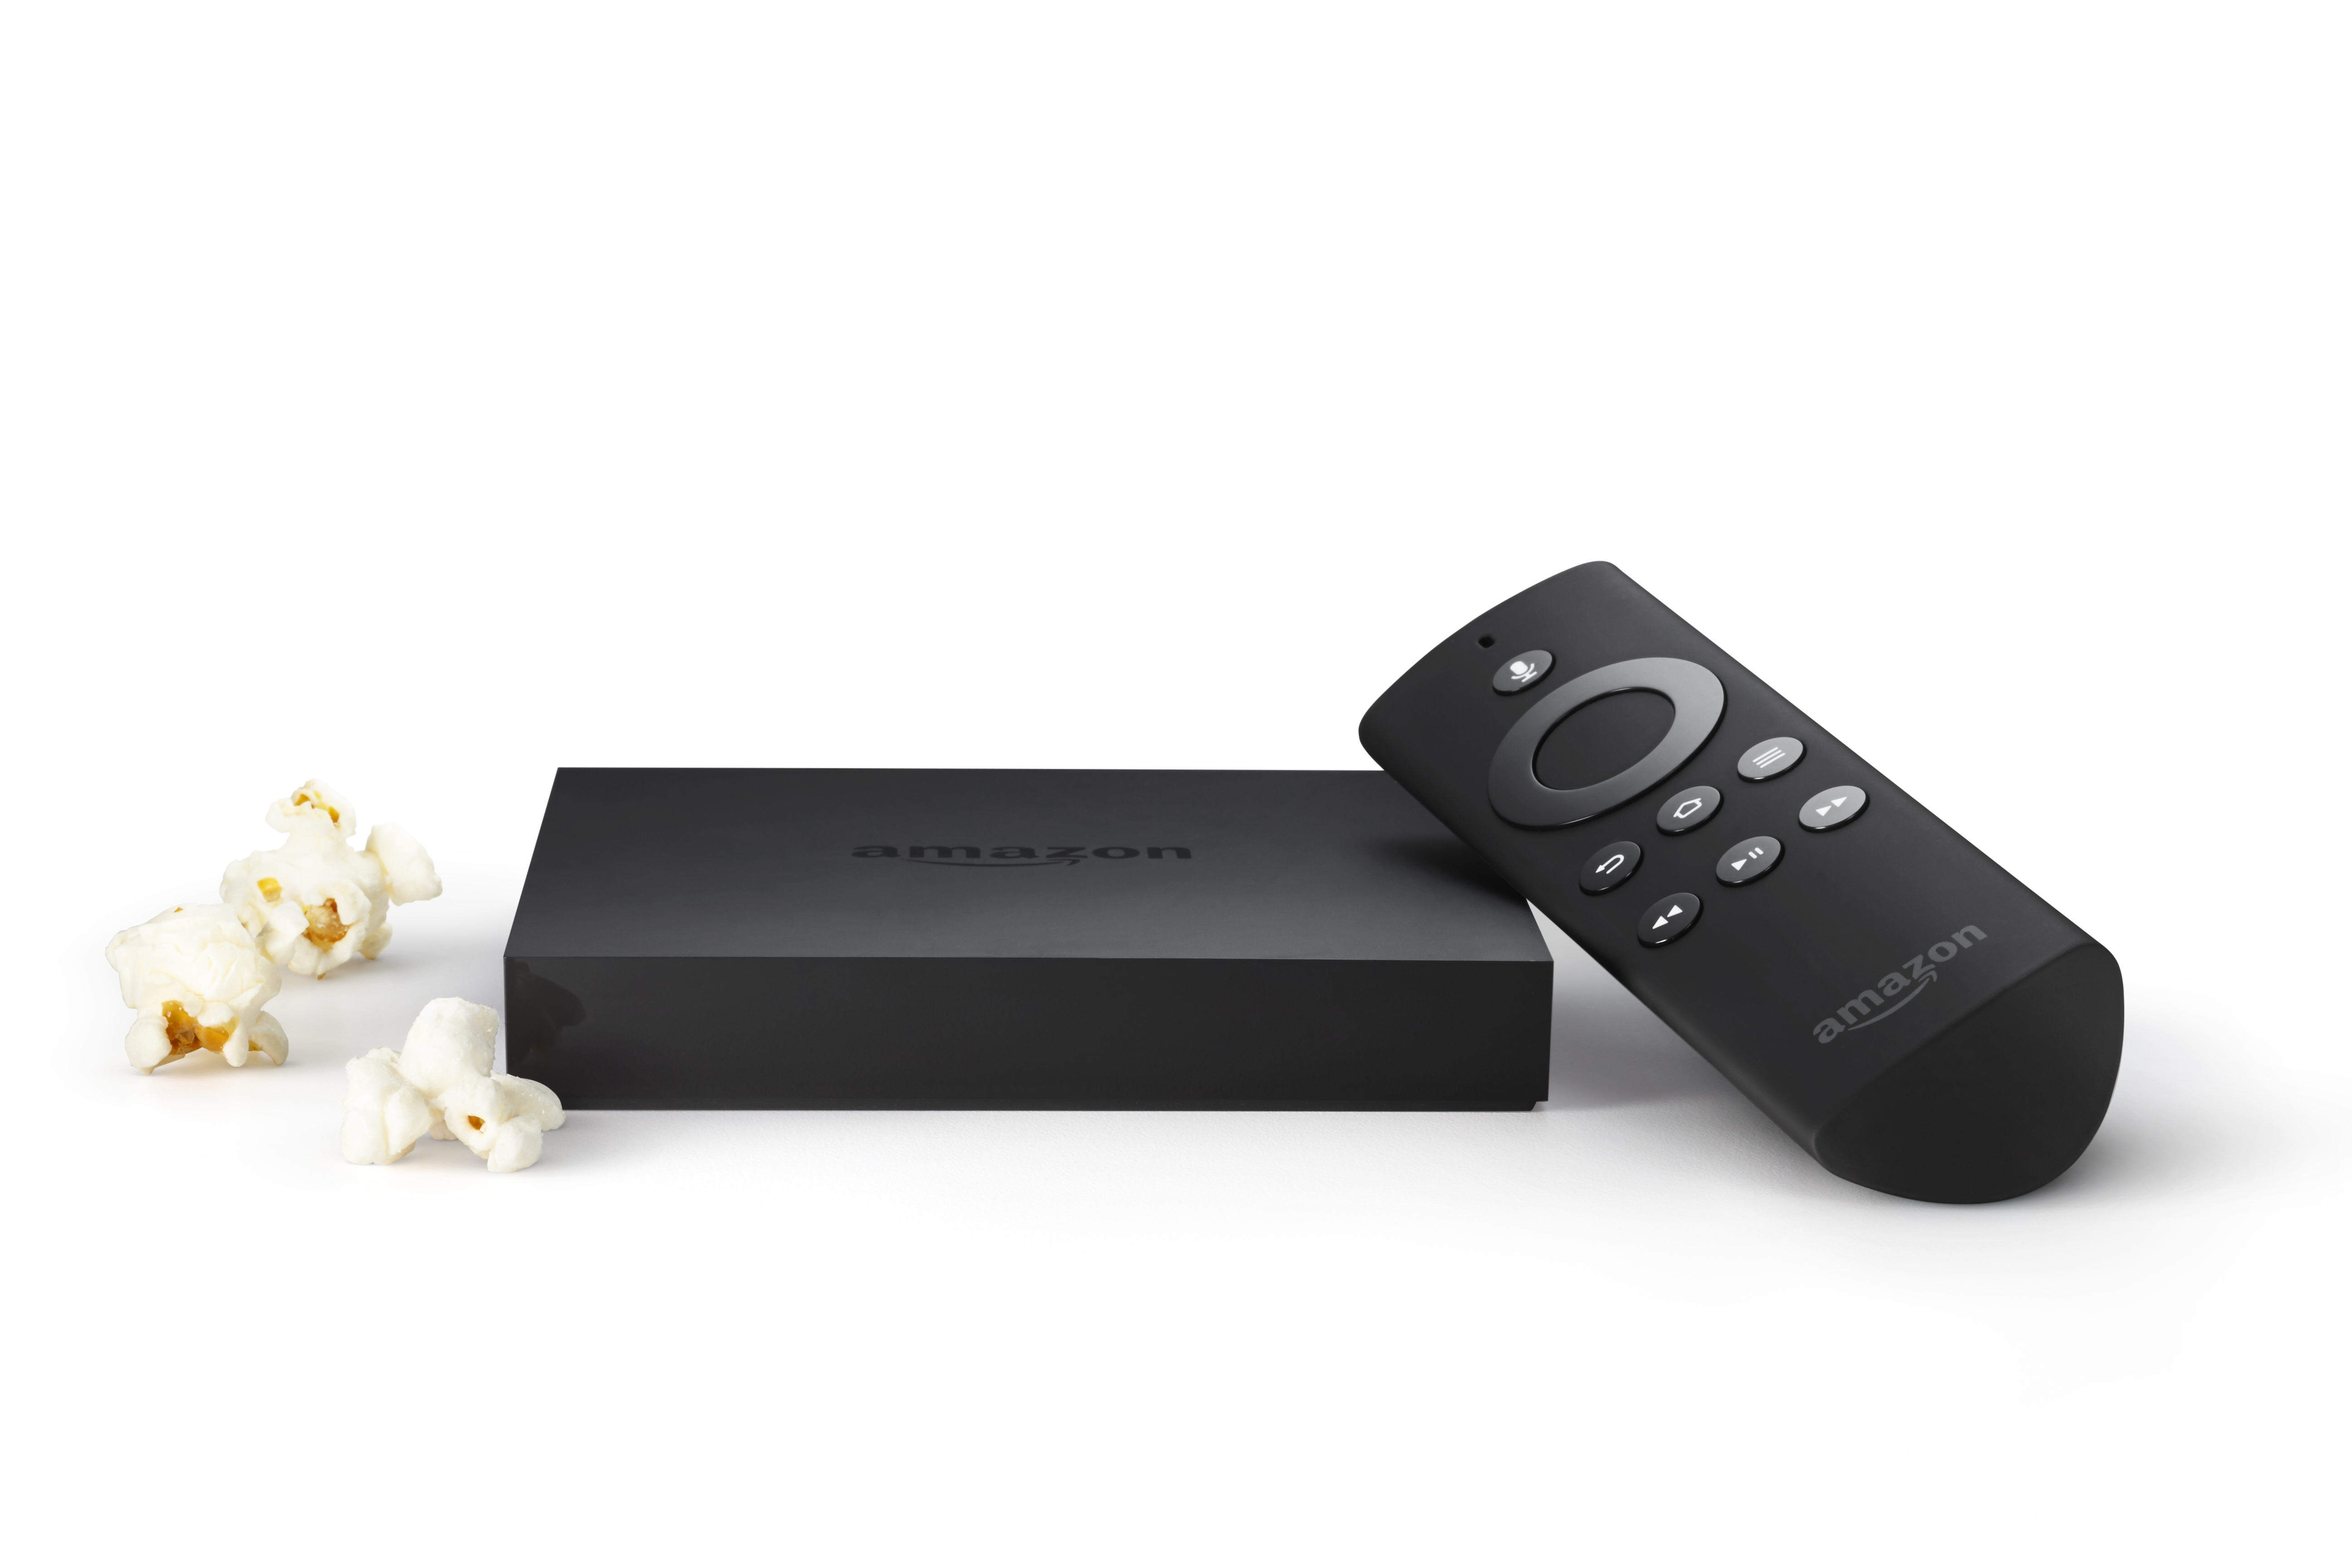 Amazon Fire TV is a tiny box that plugs into your HDTV for easy and instant access to Netflix, Prime Instant Video, Hulu Plus, WatchESPN, SHOWTIME, low-cost video rentals, and much more. (Photo: Business Wire)